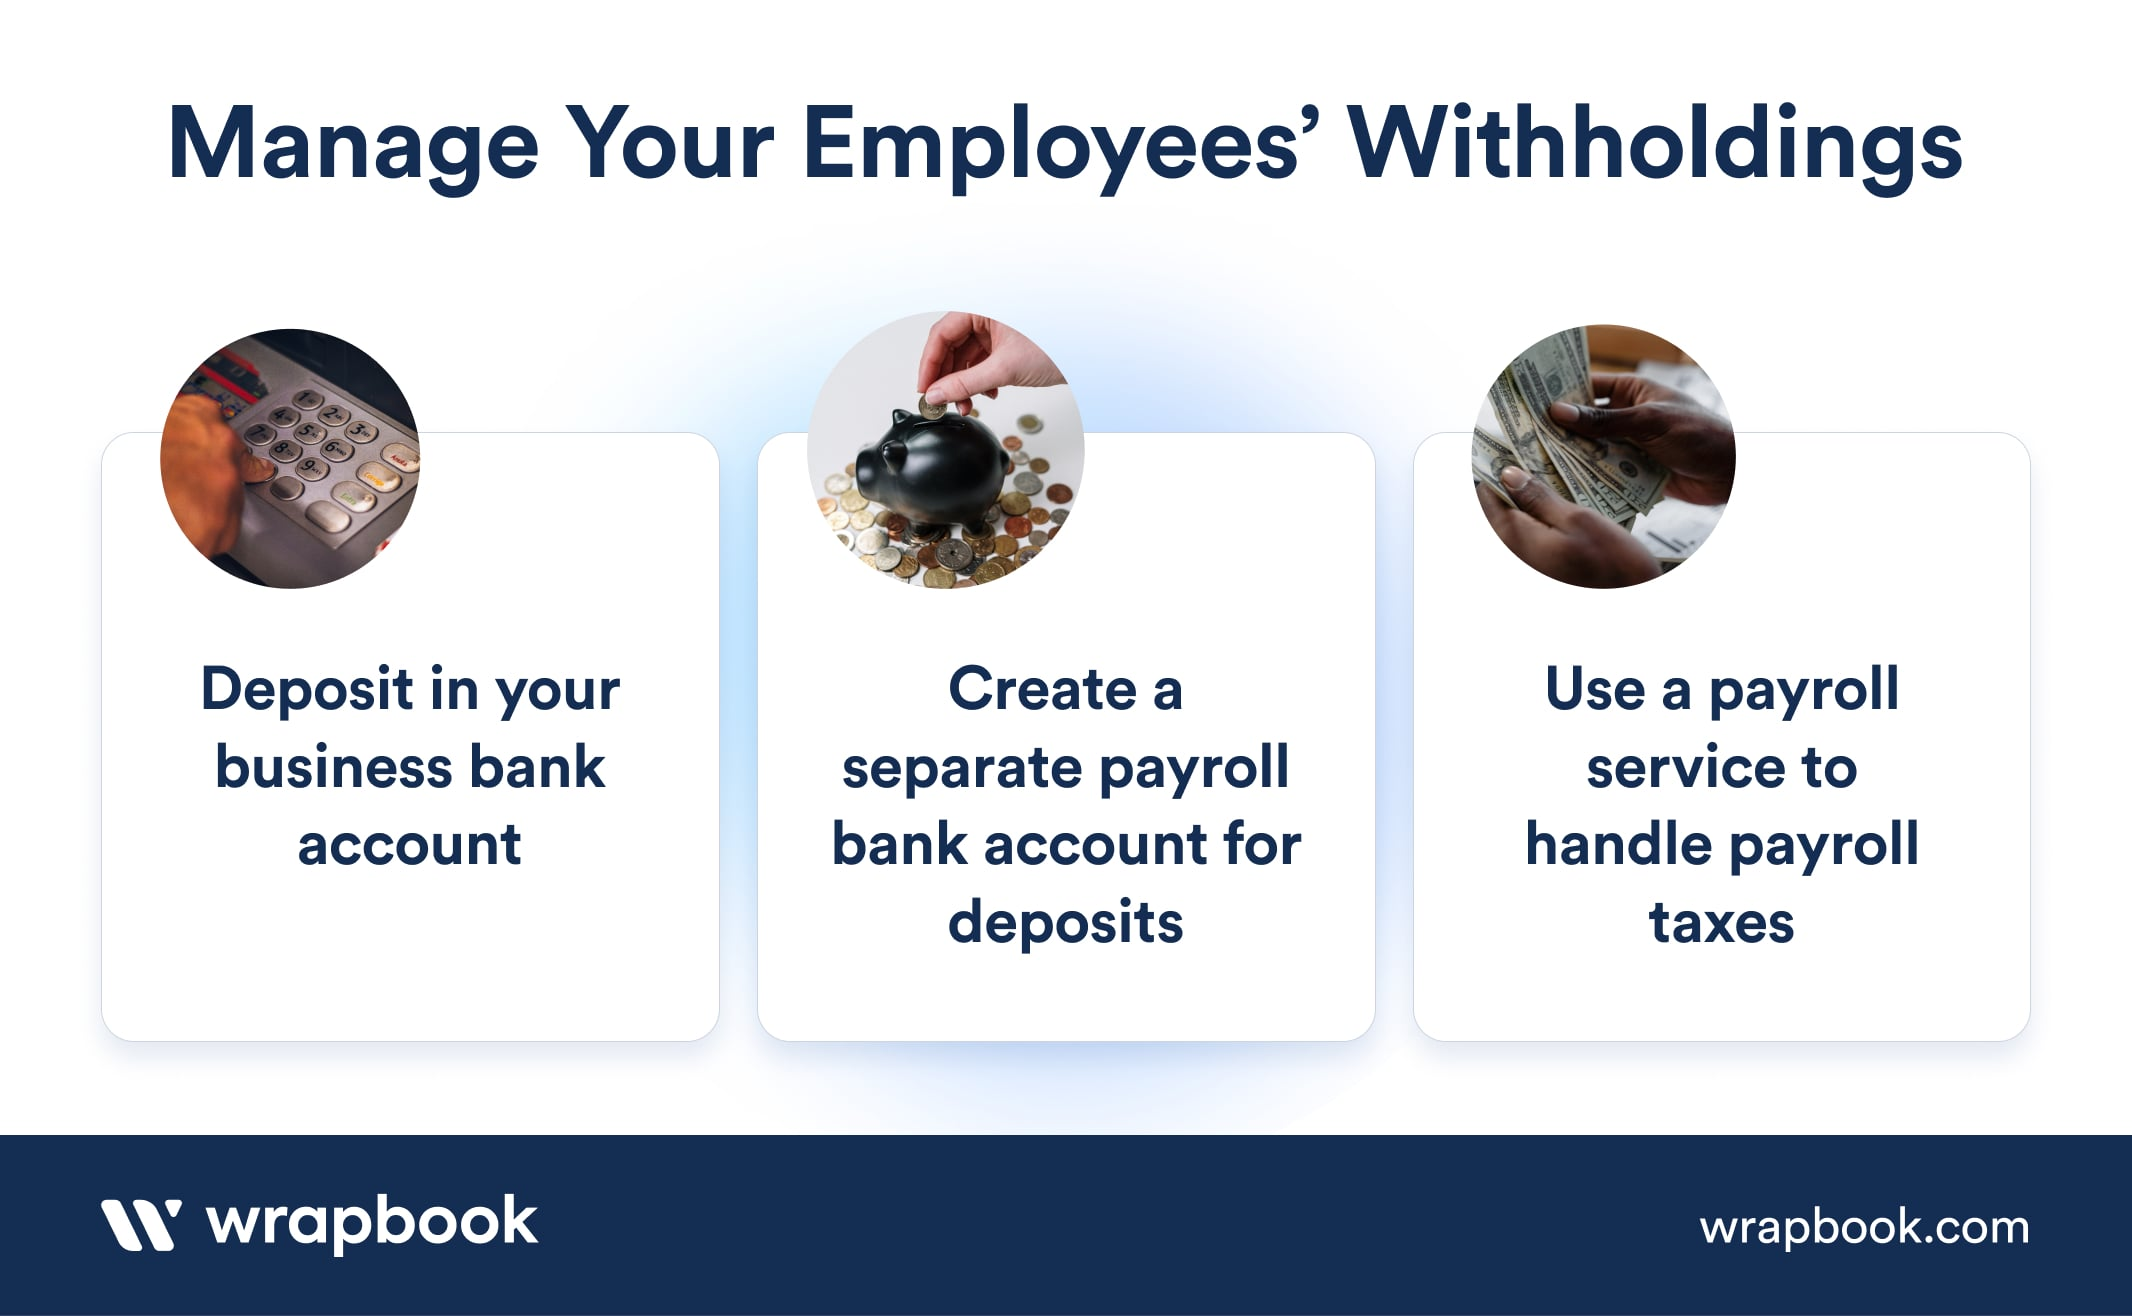 How to Calculate Payroll Taxes - Withholding Employees' Funds Graphic - Wrapbook